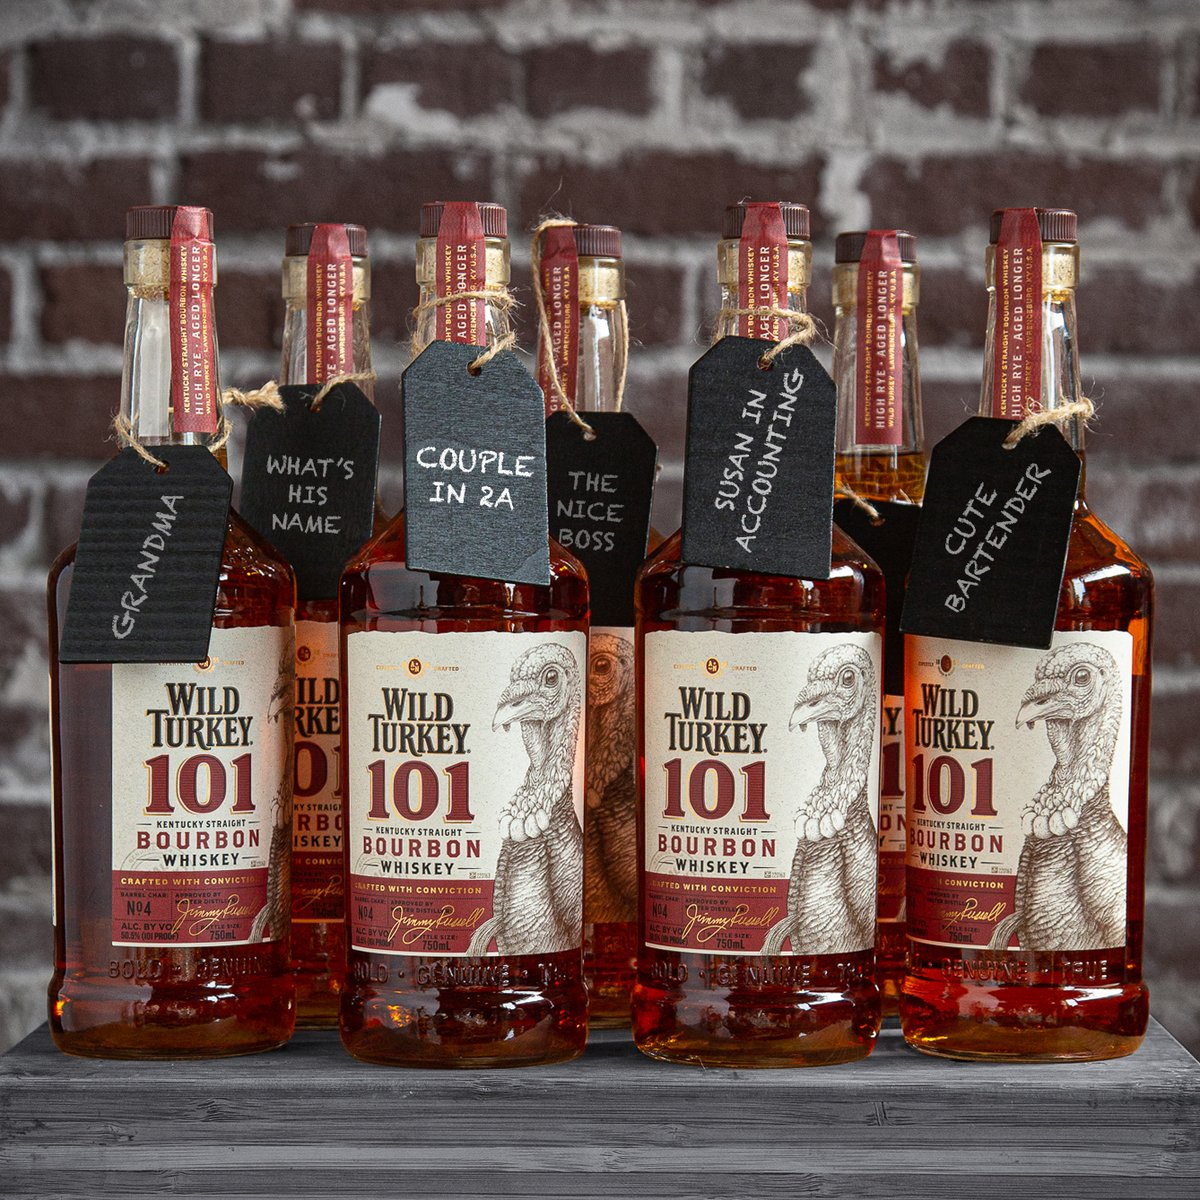 Don't know what to give this holiday season? It's always best to gift something that you'd want yourself. You know the 1...01. Wild Turkey® 101 Bourbon is aged longer for more character and makes a bold gift. #RealBourbonNoApologies  Shop @wildturkey →